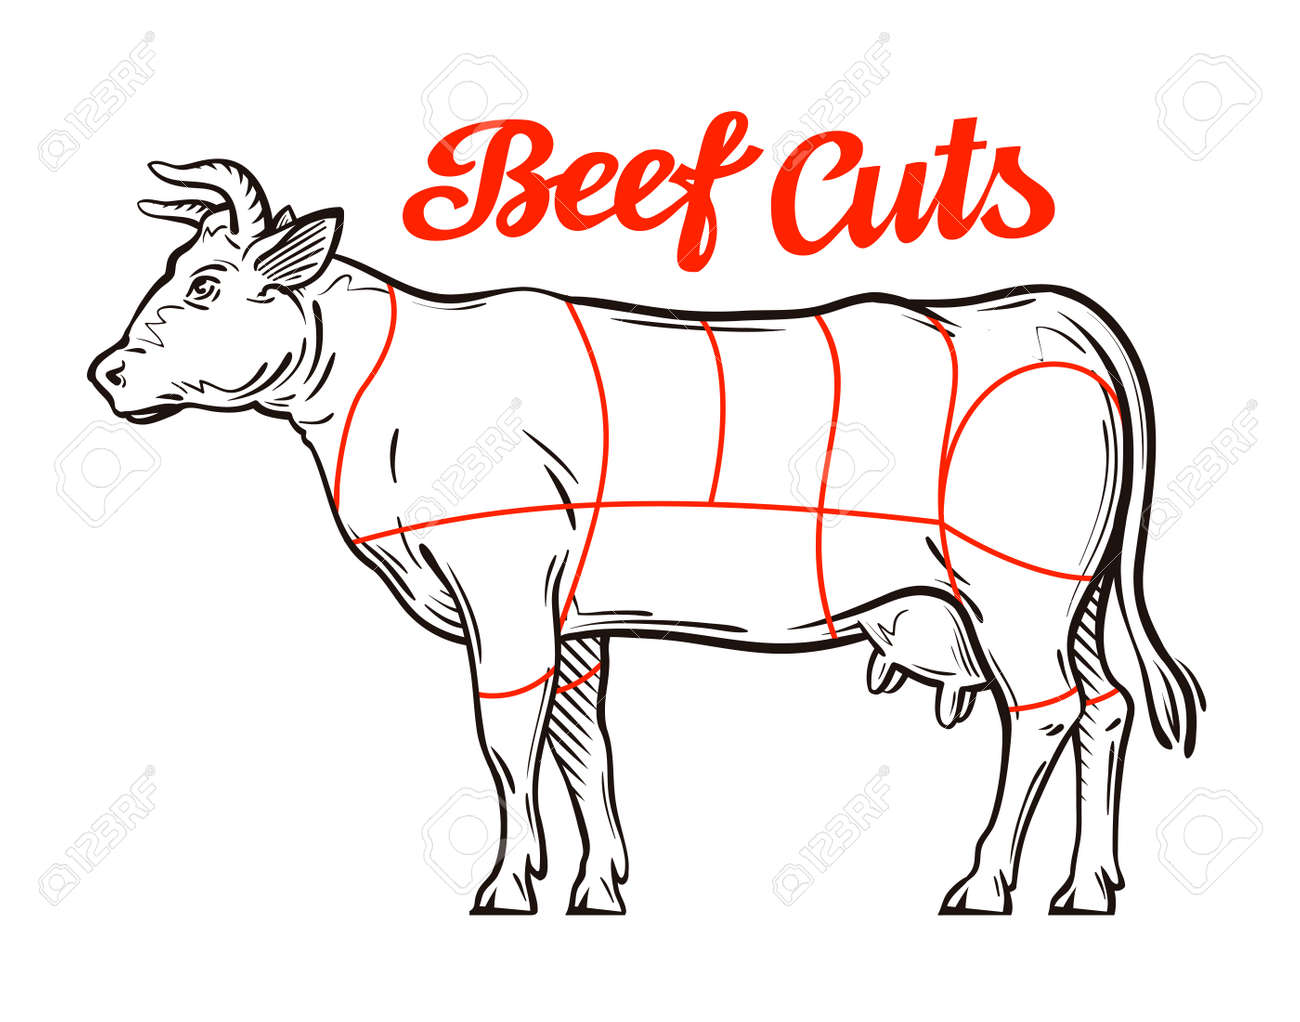 Lion Meat Cuts Diagram Car Wiring Diagrams Explained Chickencutsdiagram Images Gallery